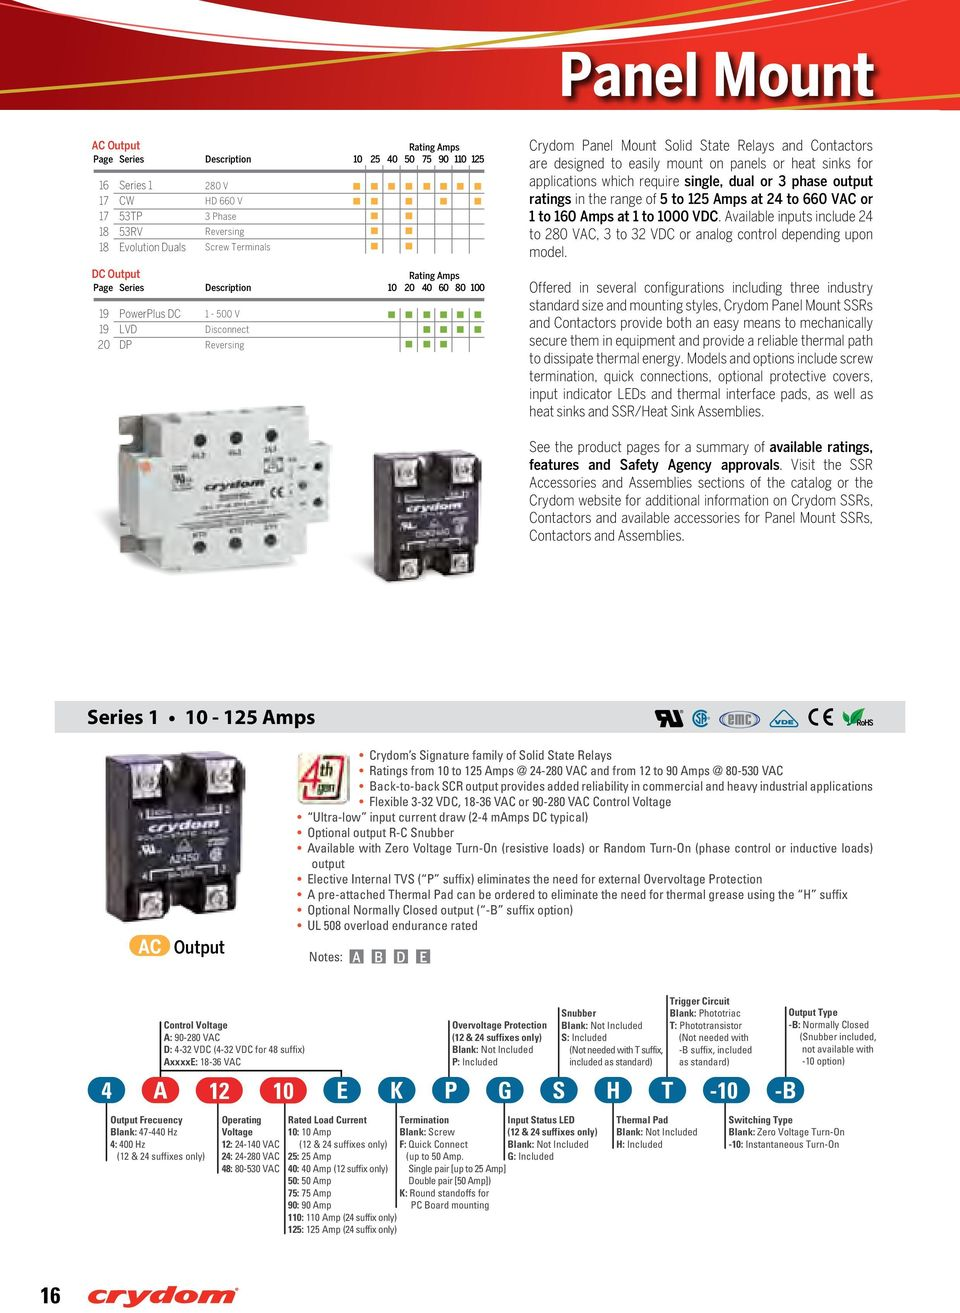 Amps at 1 to 1000 VDC. Available inputs include 24 to 280 VAC, 3 to 32 VDC or analog control depending upon model.